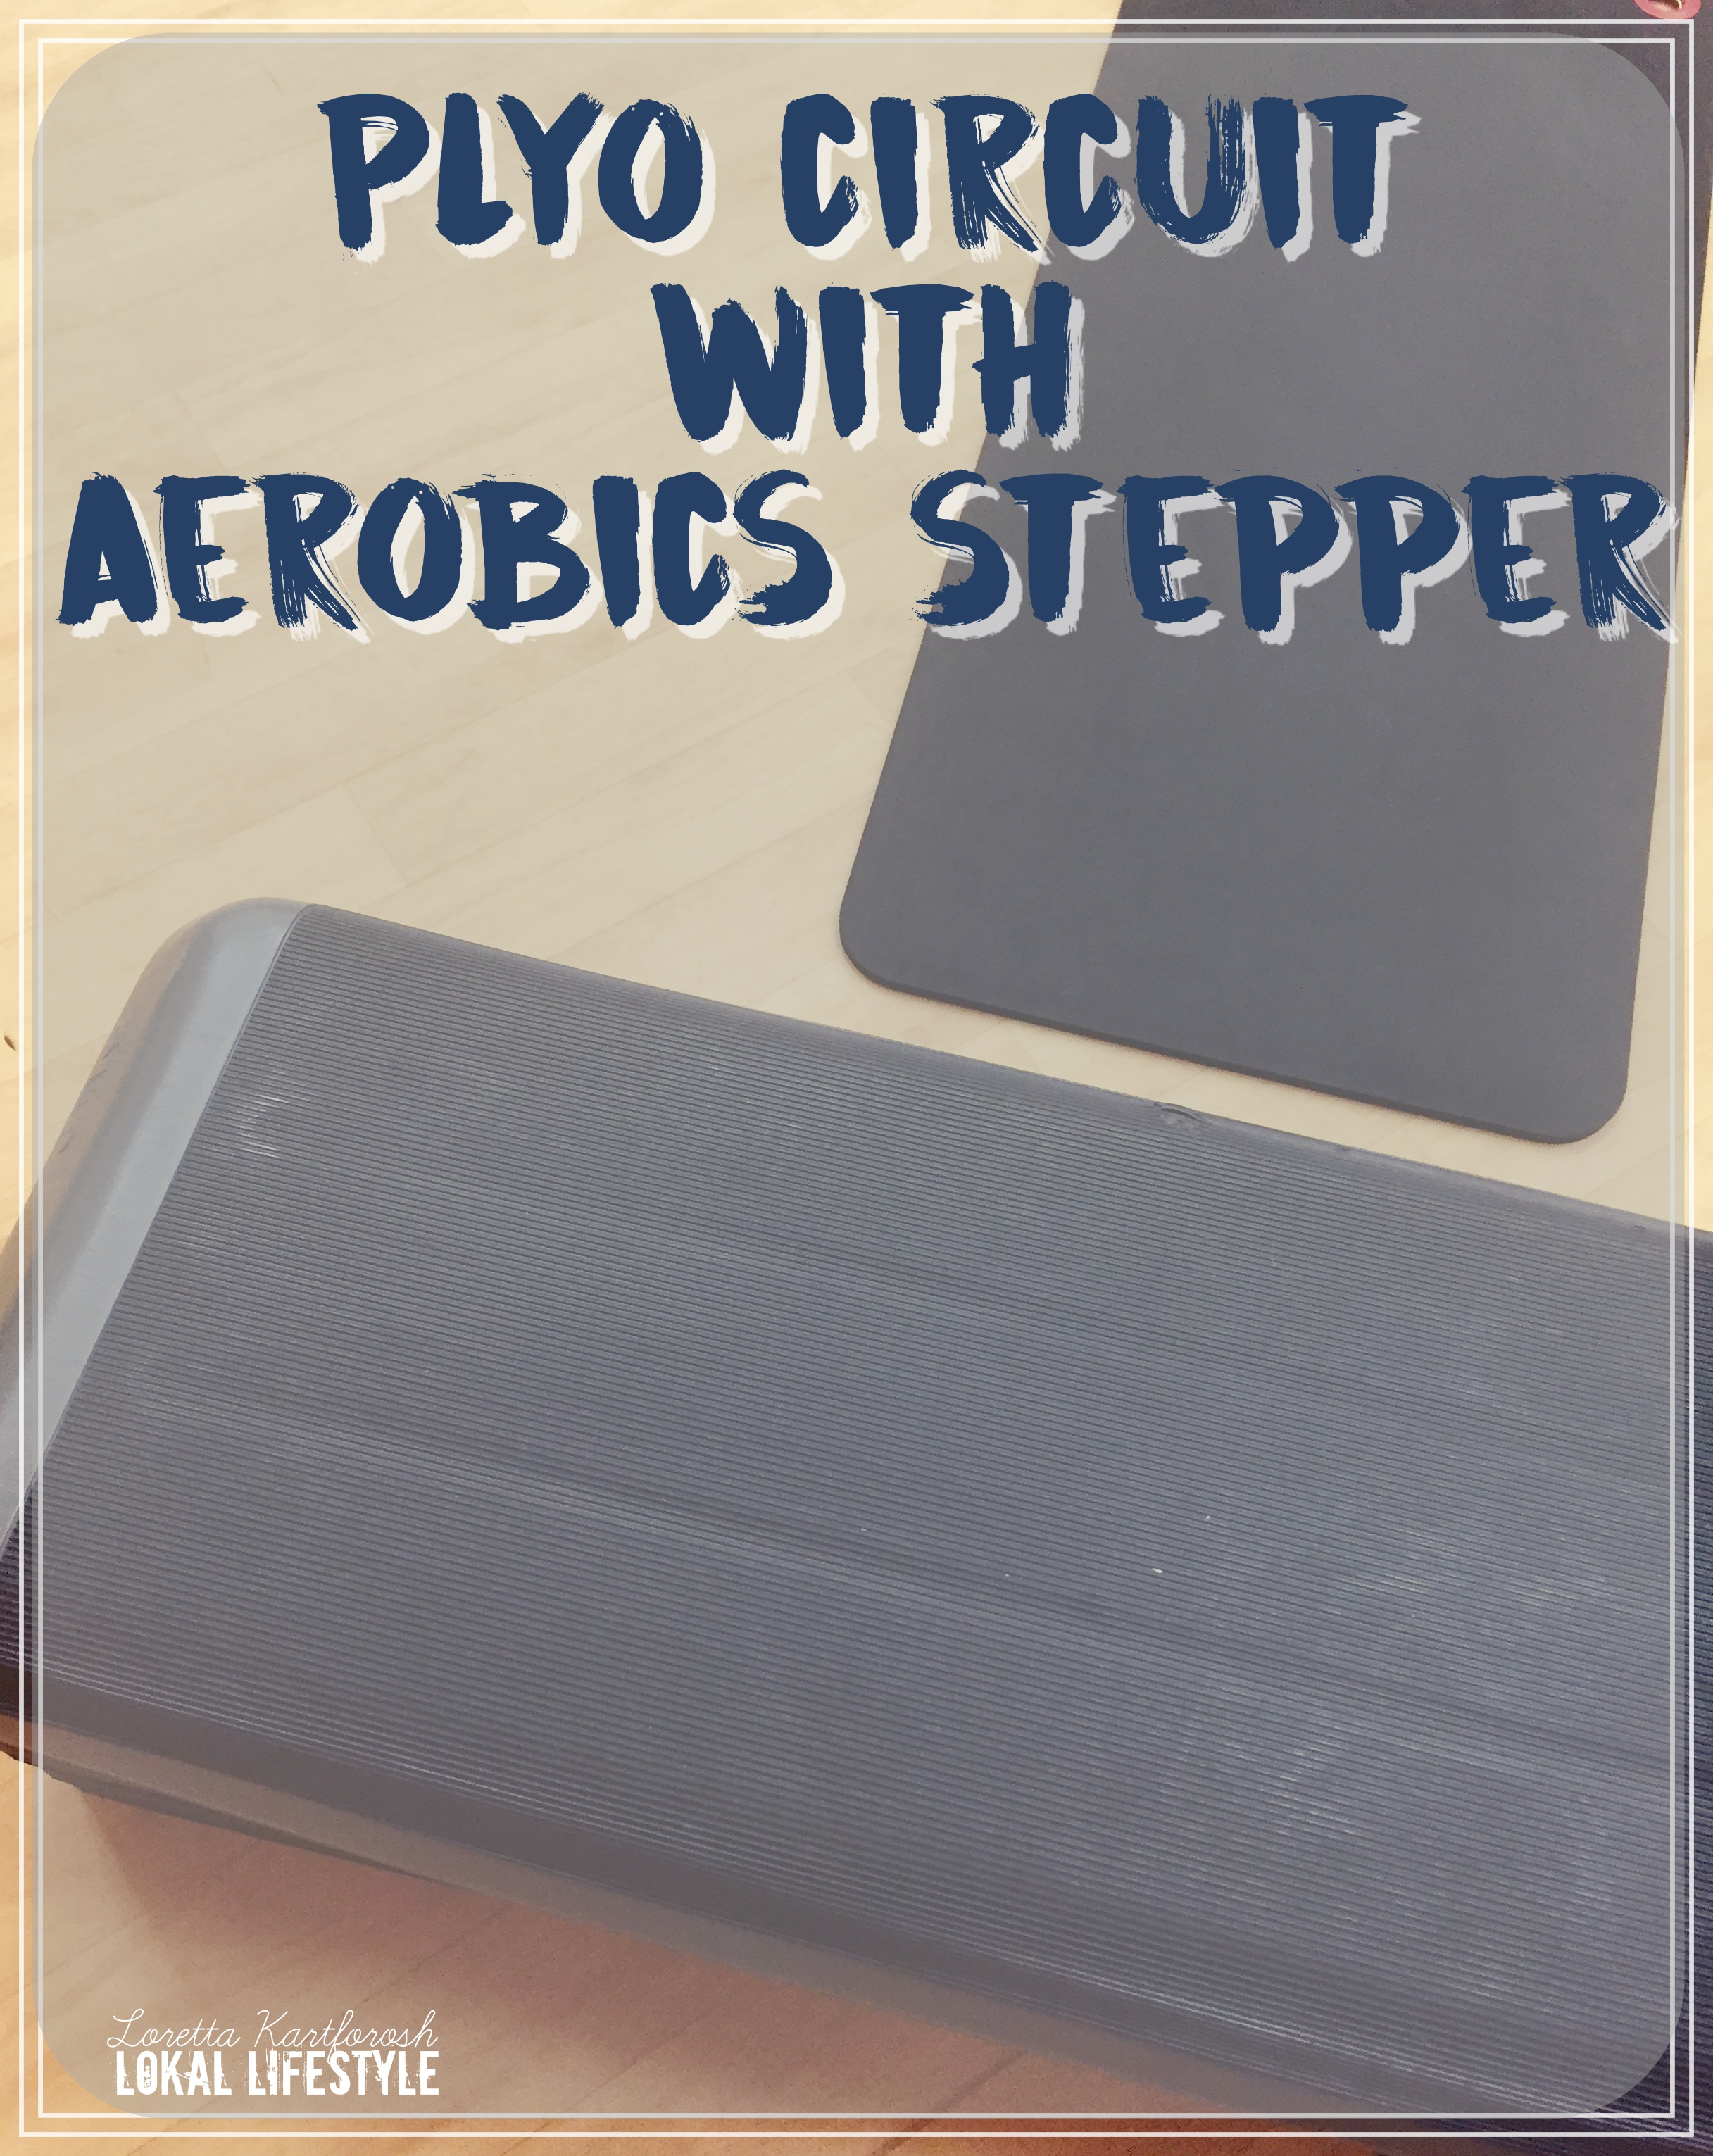 Plyo Circuit with Aerobics Stepper